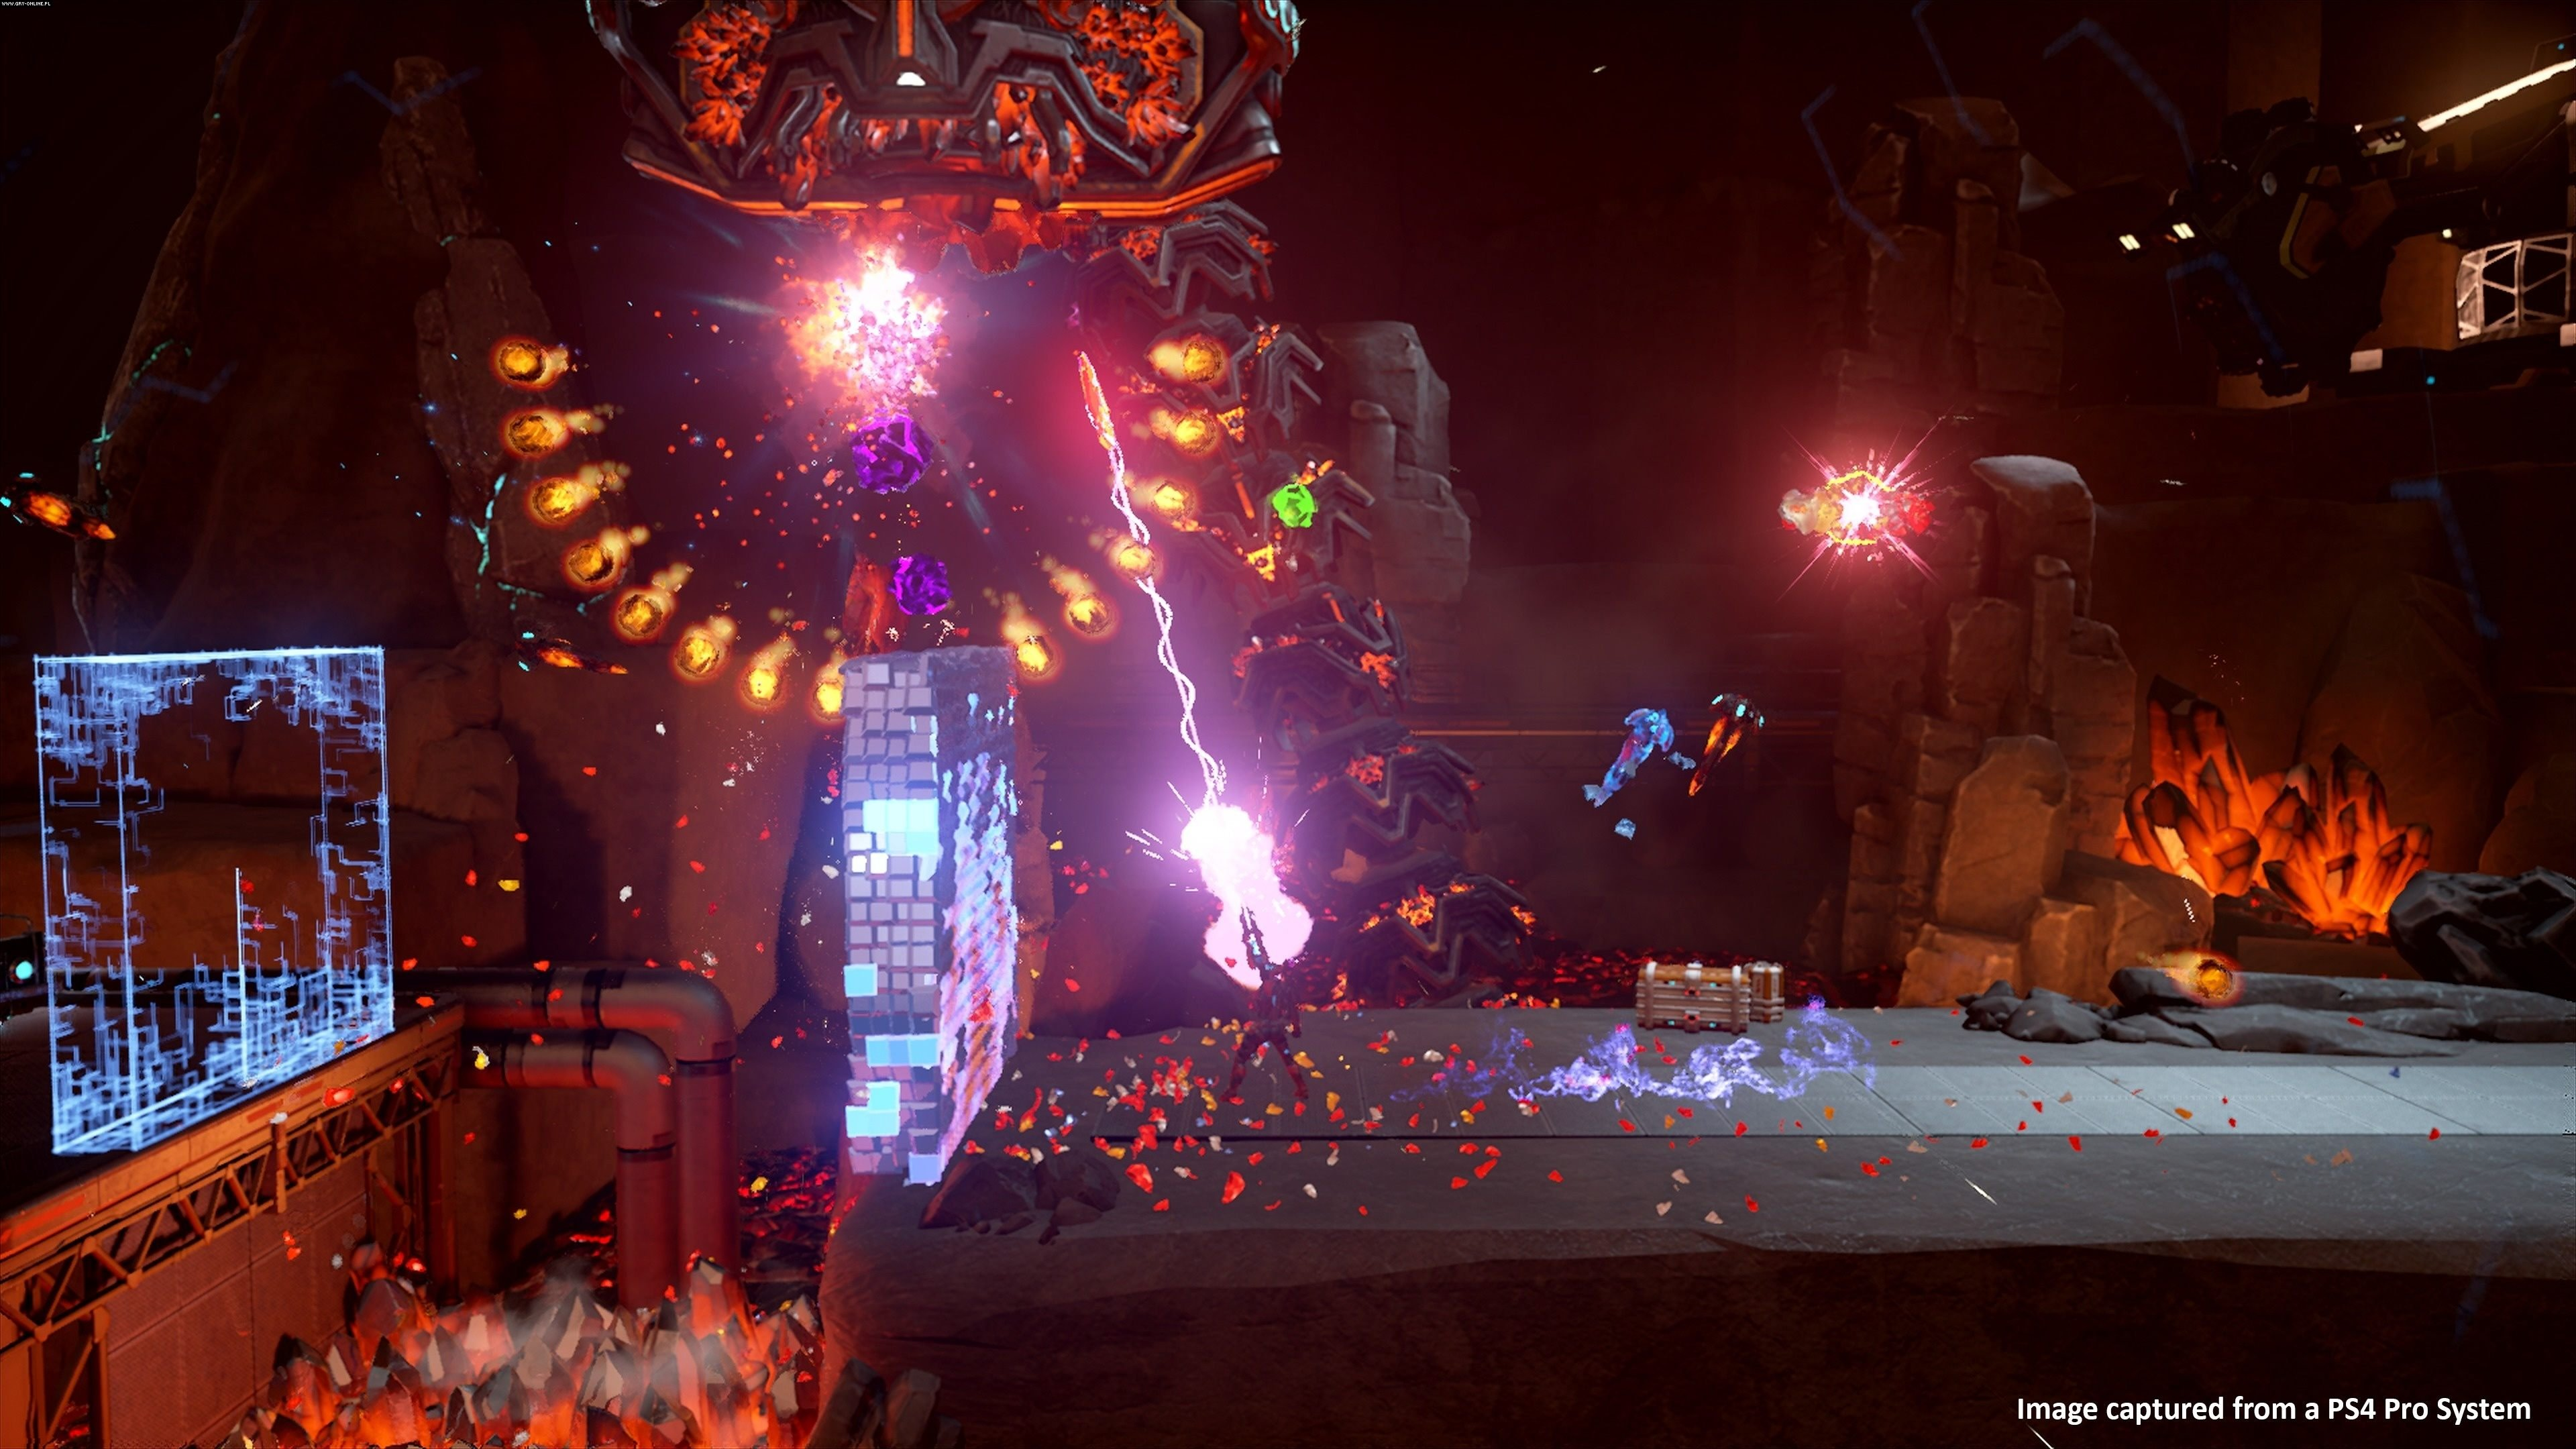 Matterfall PS4 Games Image 2/11, Housemarque, Sony Interactive Entertainment